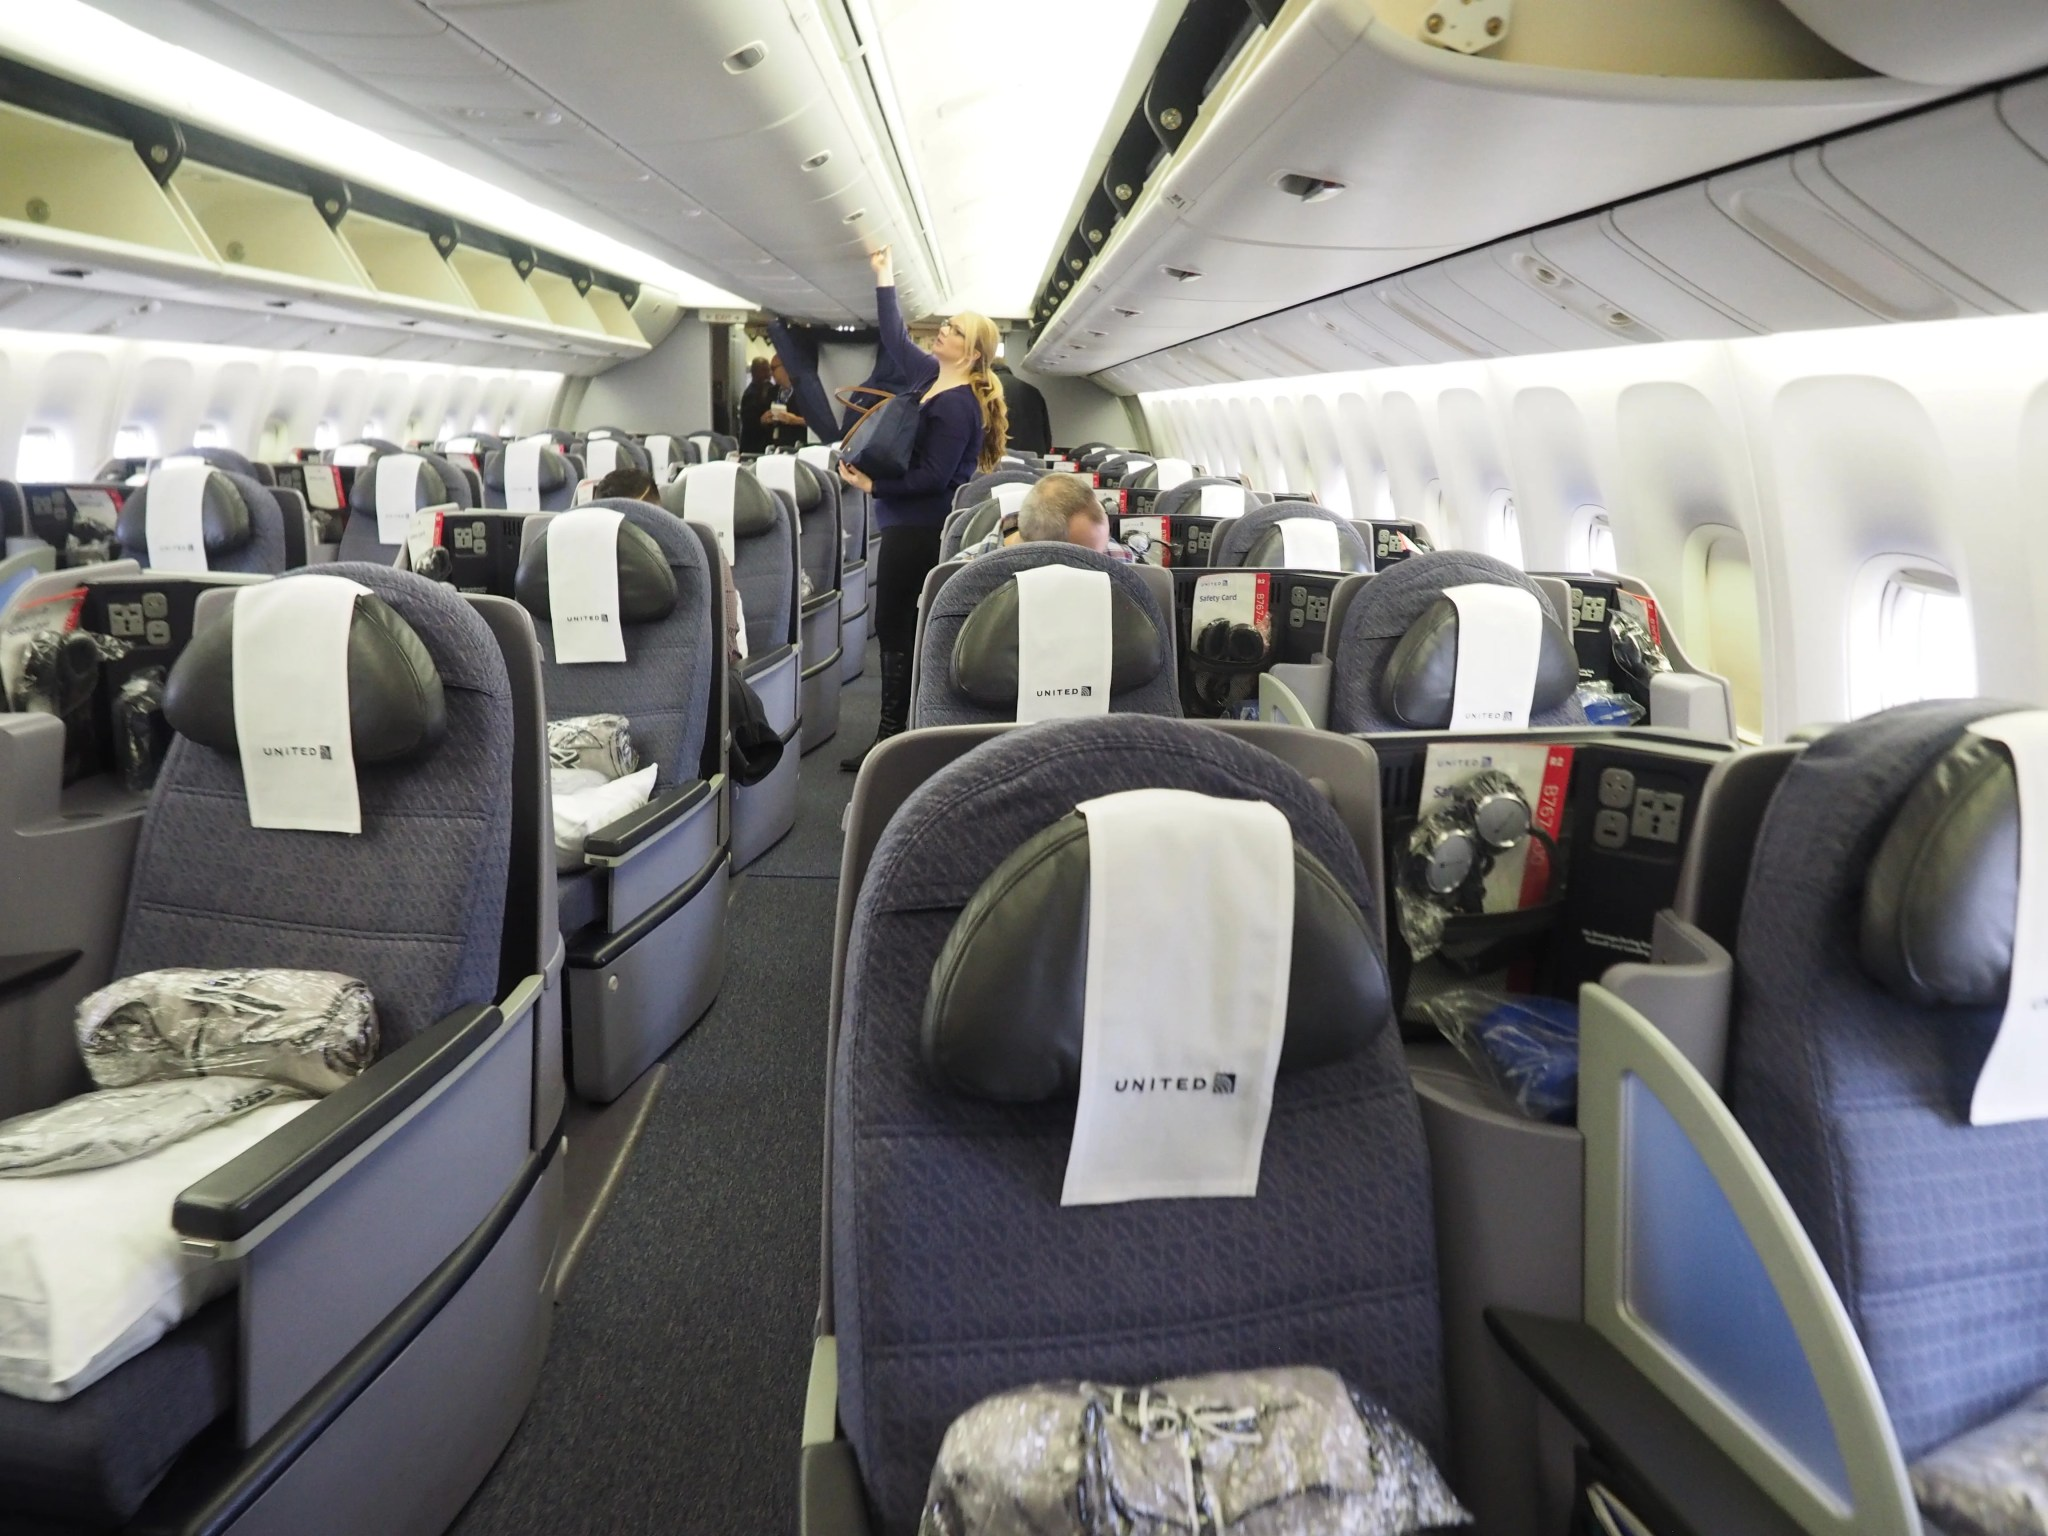 Stupendous Review United 767 400Er Polaris Business From London To Nyc Alphanode Cool Chair Designs And Ideas Alphanodeonline